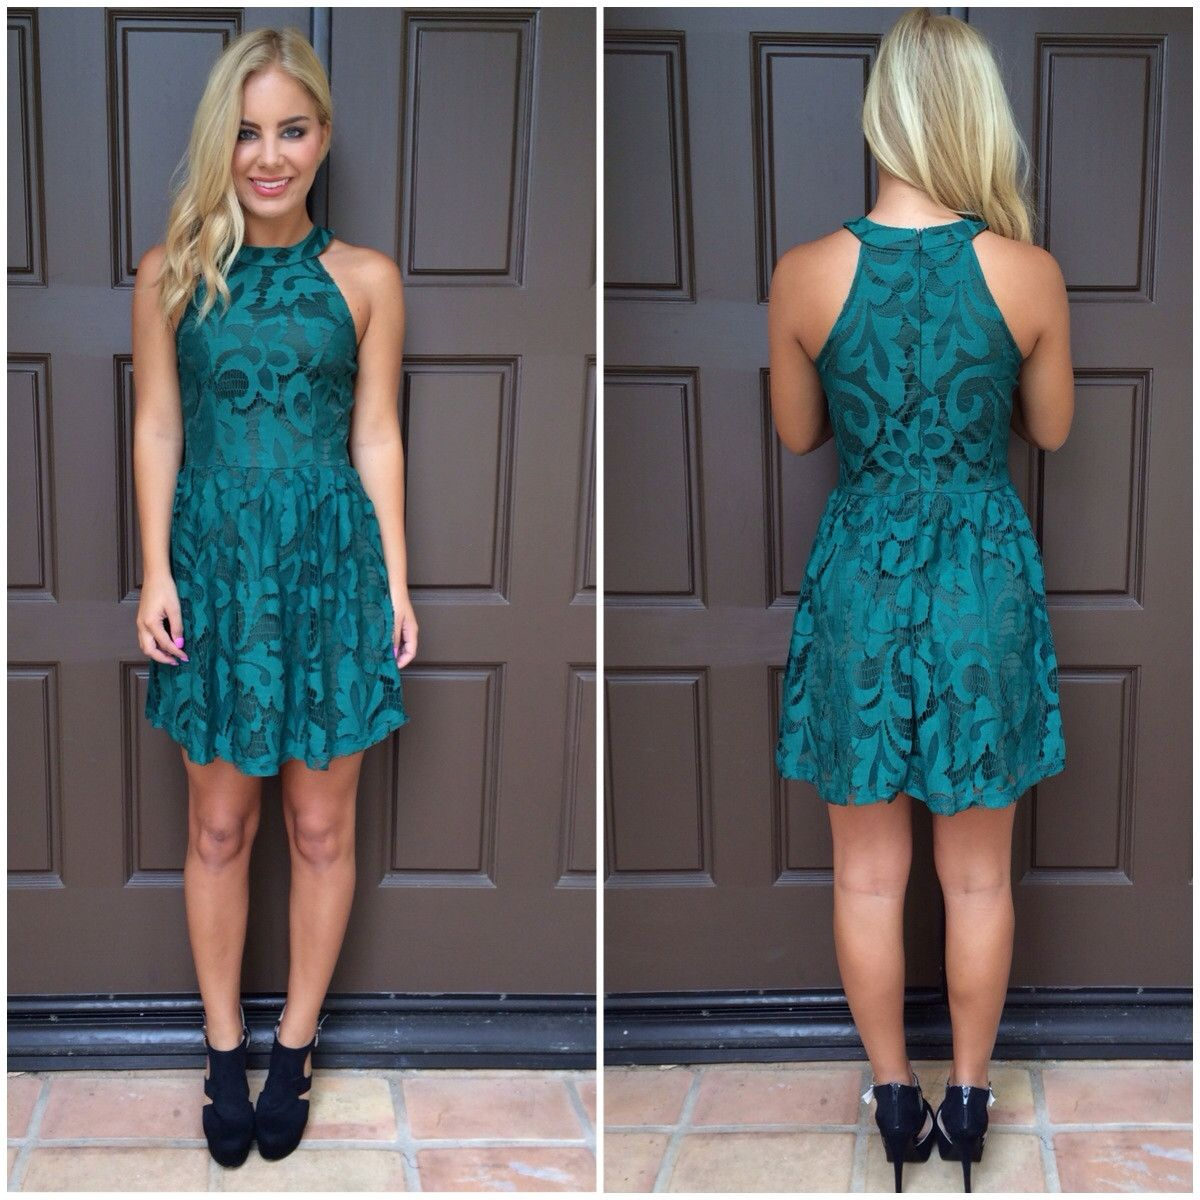 Vines of envy emerald dress from dainty hooligan put it on me